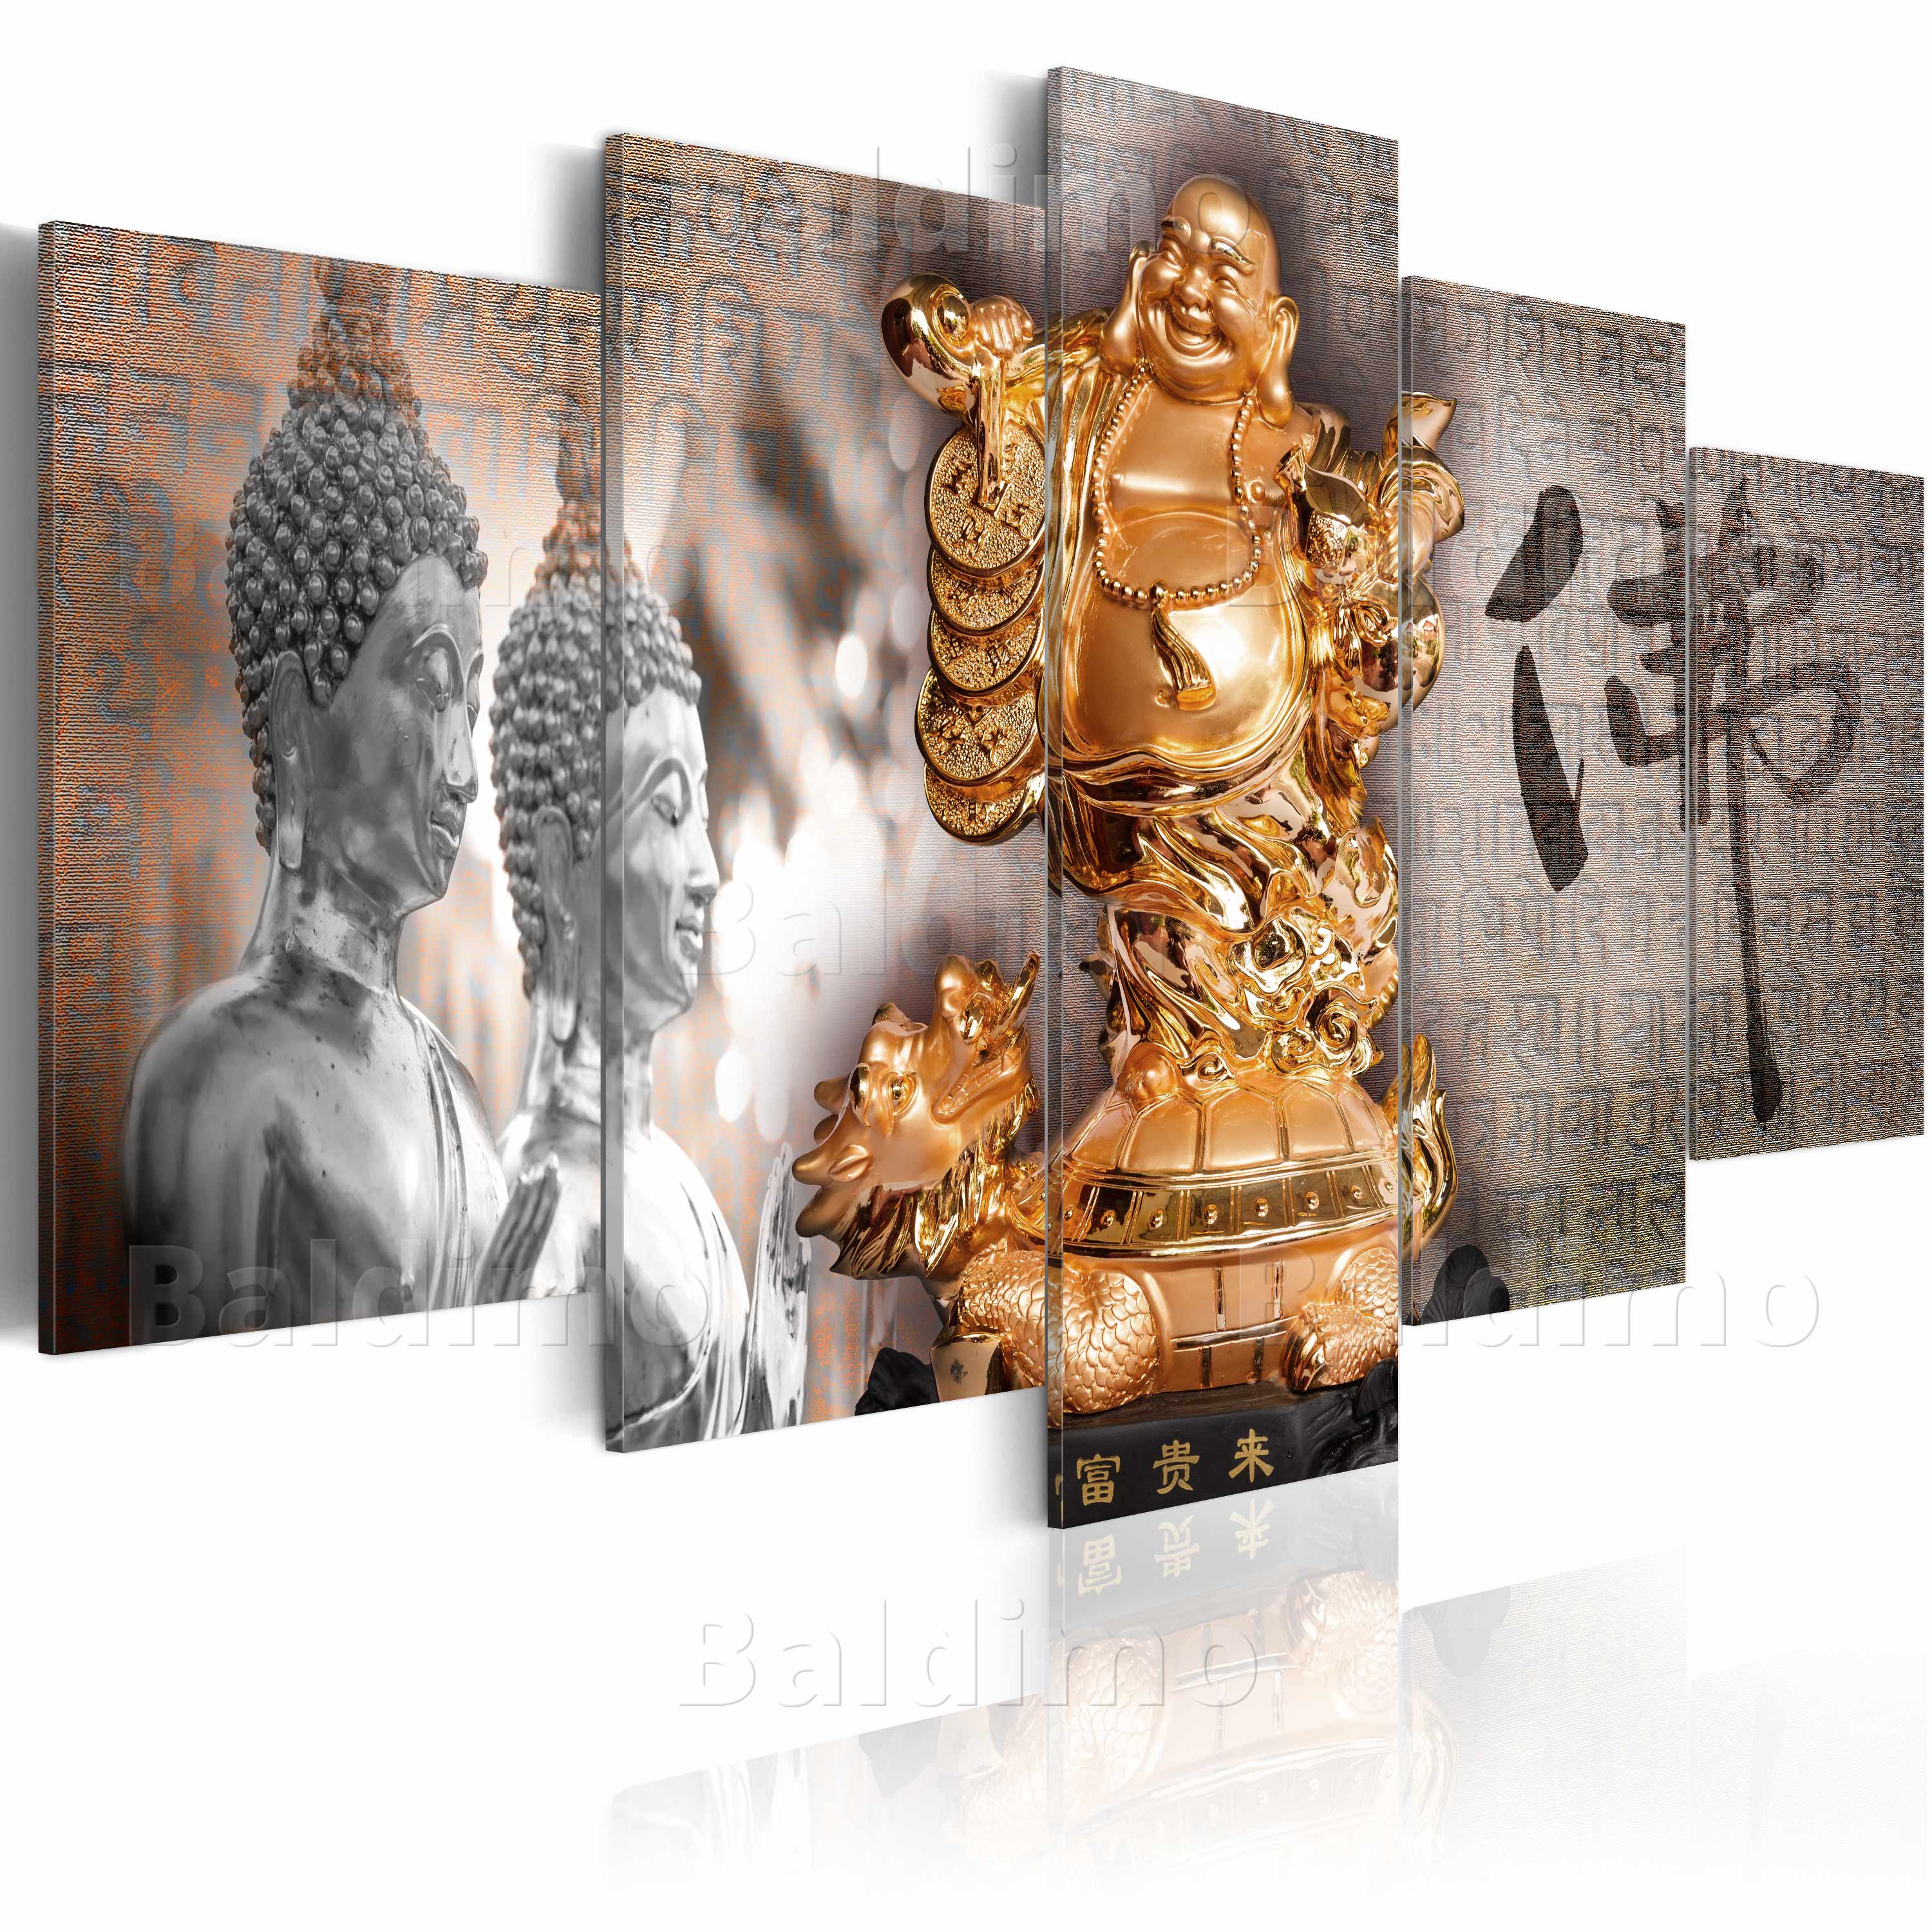 leinwand bilder xxl fertig aufgespannt bild buddha 020113 286 ebay. Black Bedroom Furniture Sets. Home Design Ideas